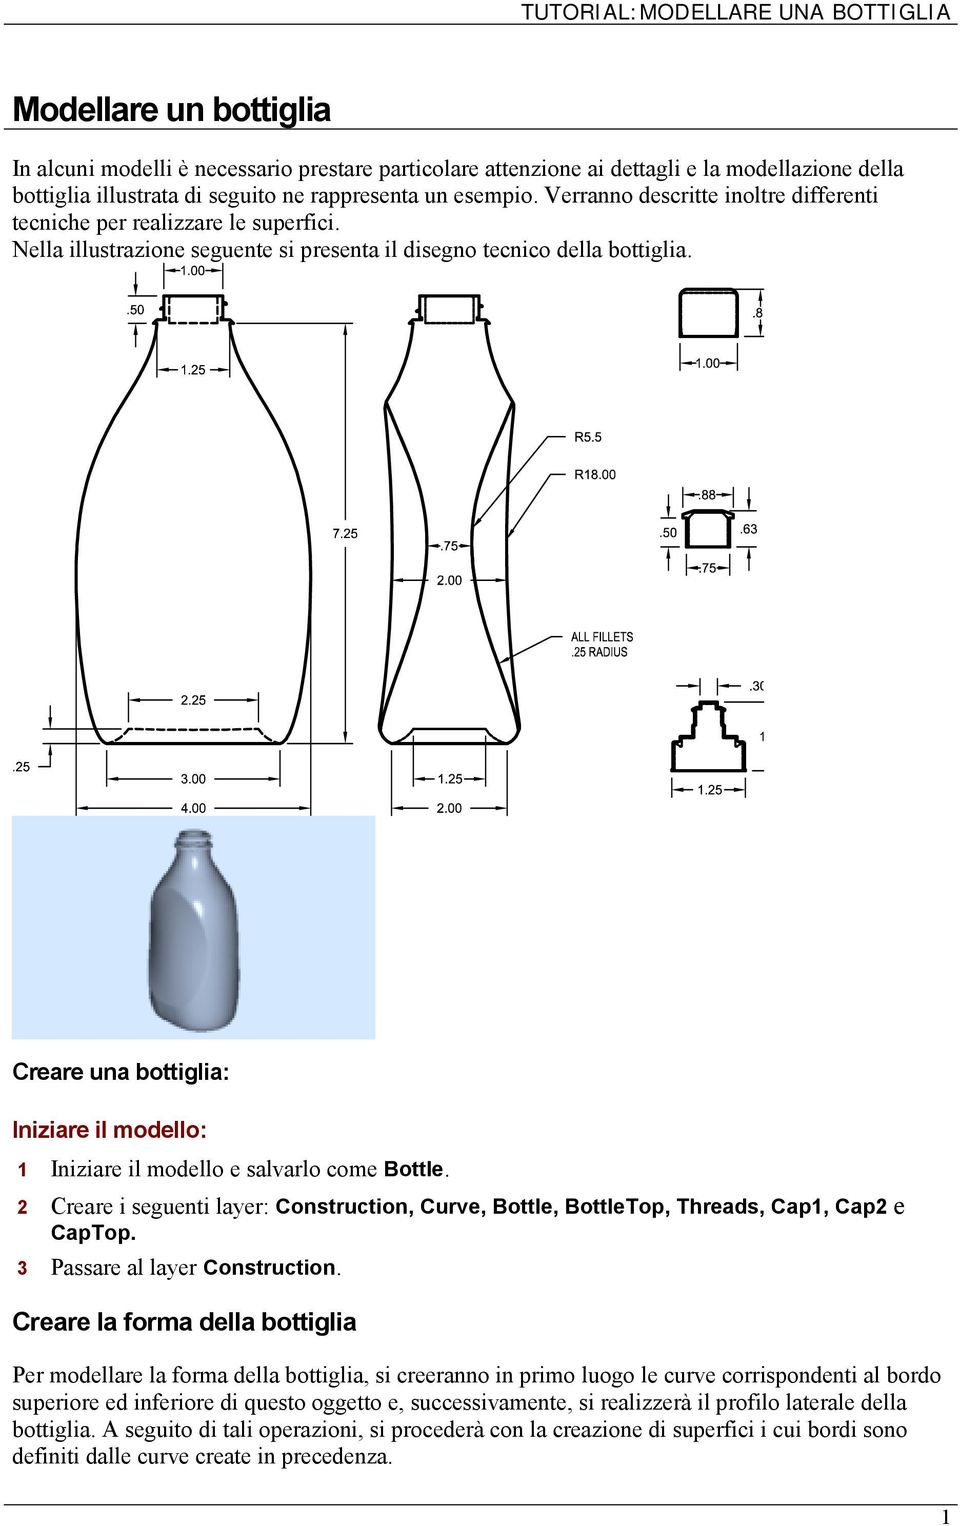 Creare una bottiglia: Iniziare il modello: 1 Iniziare il modello e salvarlo come Bottle. 2 Creare i seguenti layer: Construction, Curve, Bottle, BottleTop, Threads, Cap1, Cap2 e CapTop.